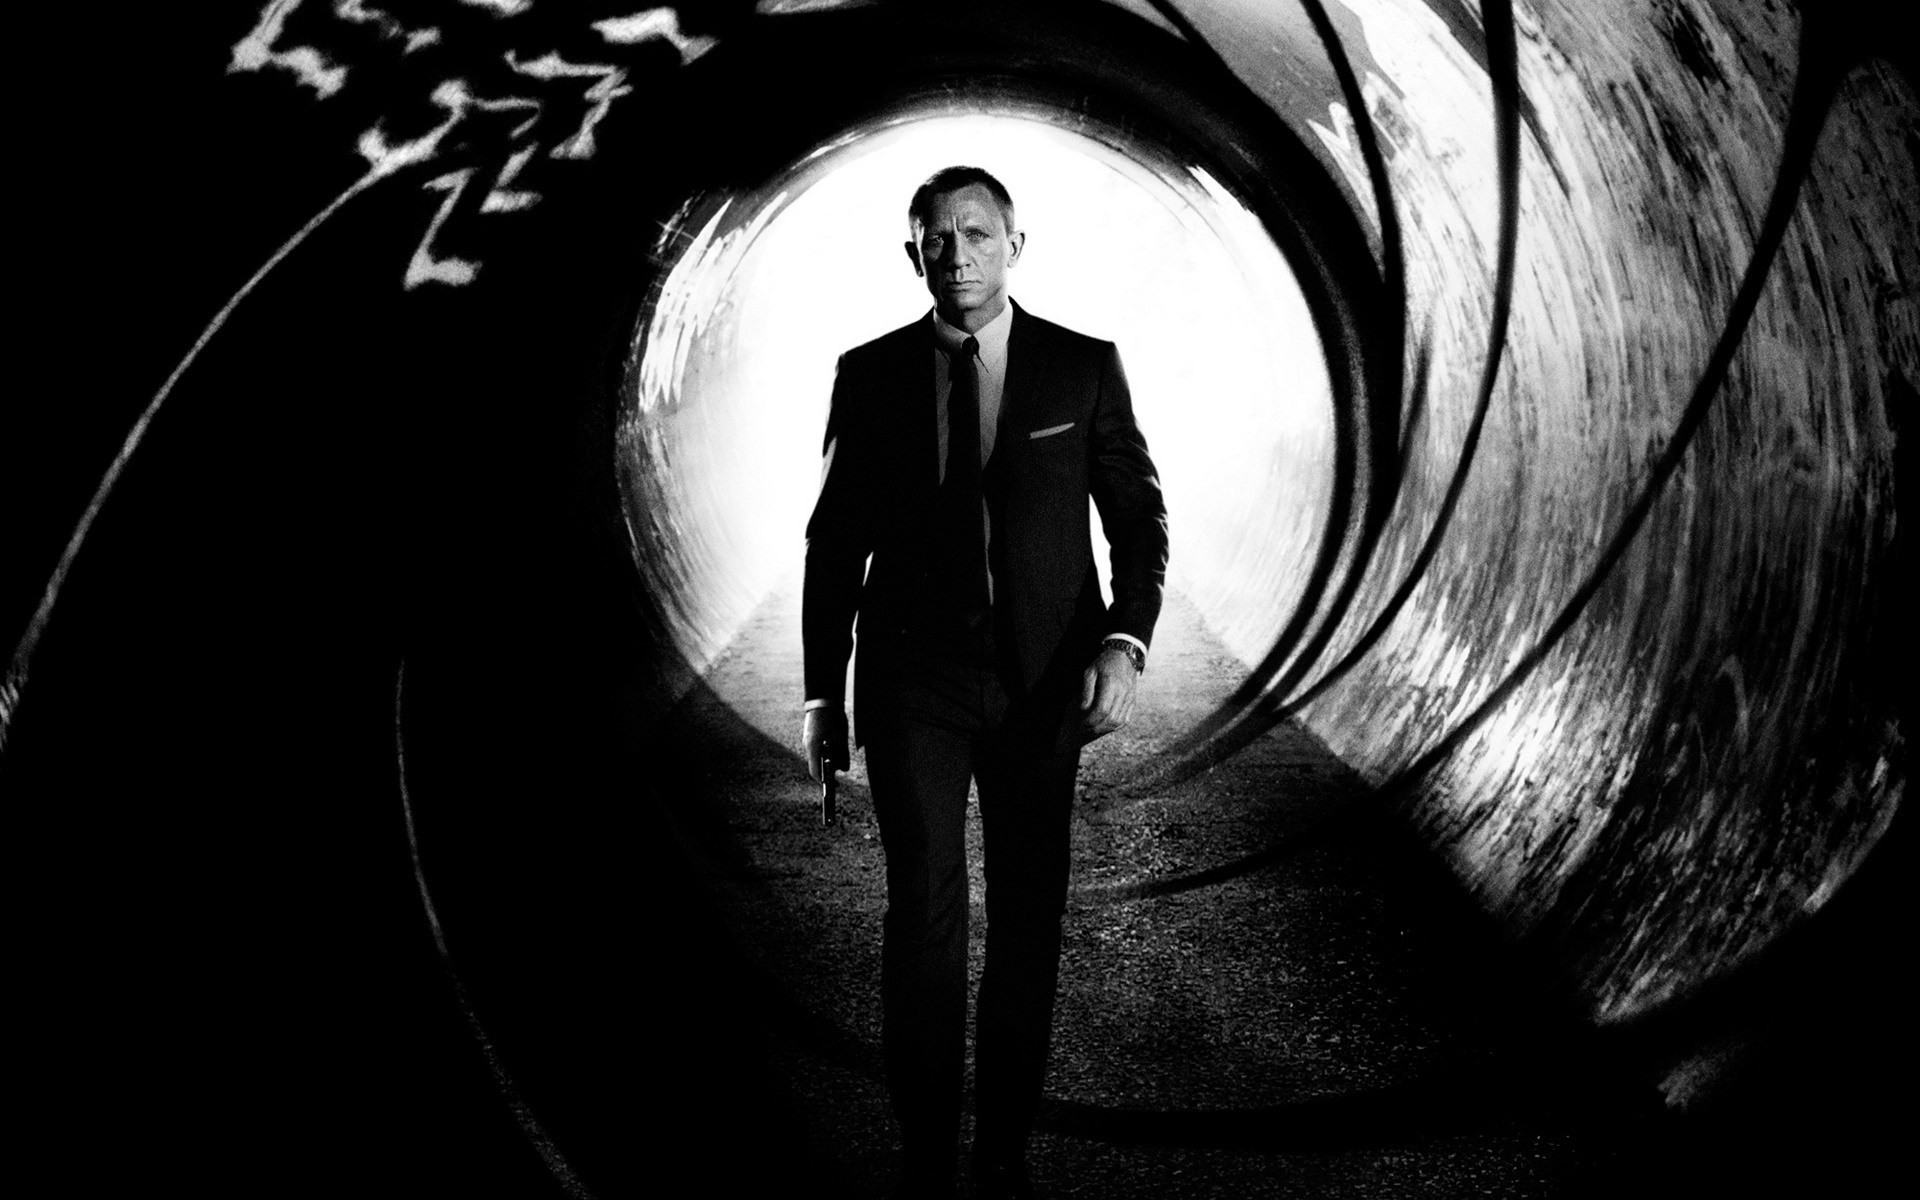 James Bond 007 Wallpaper HD James Bond Daniel Craig & James Bond Movies Wallpaper HD